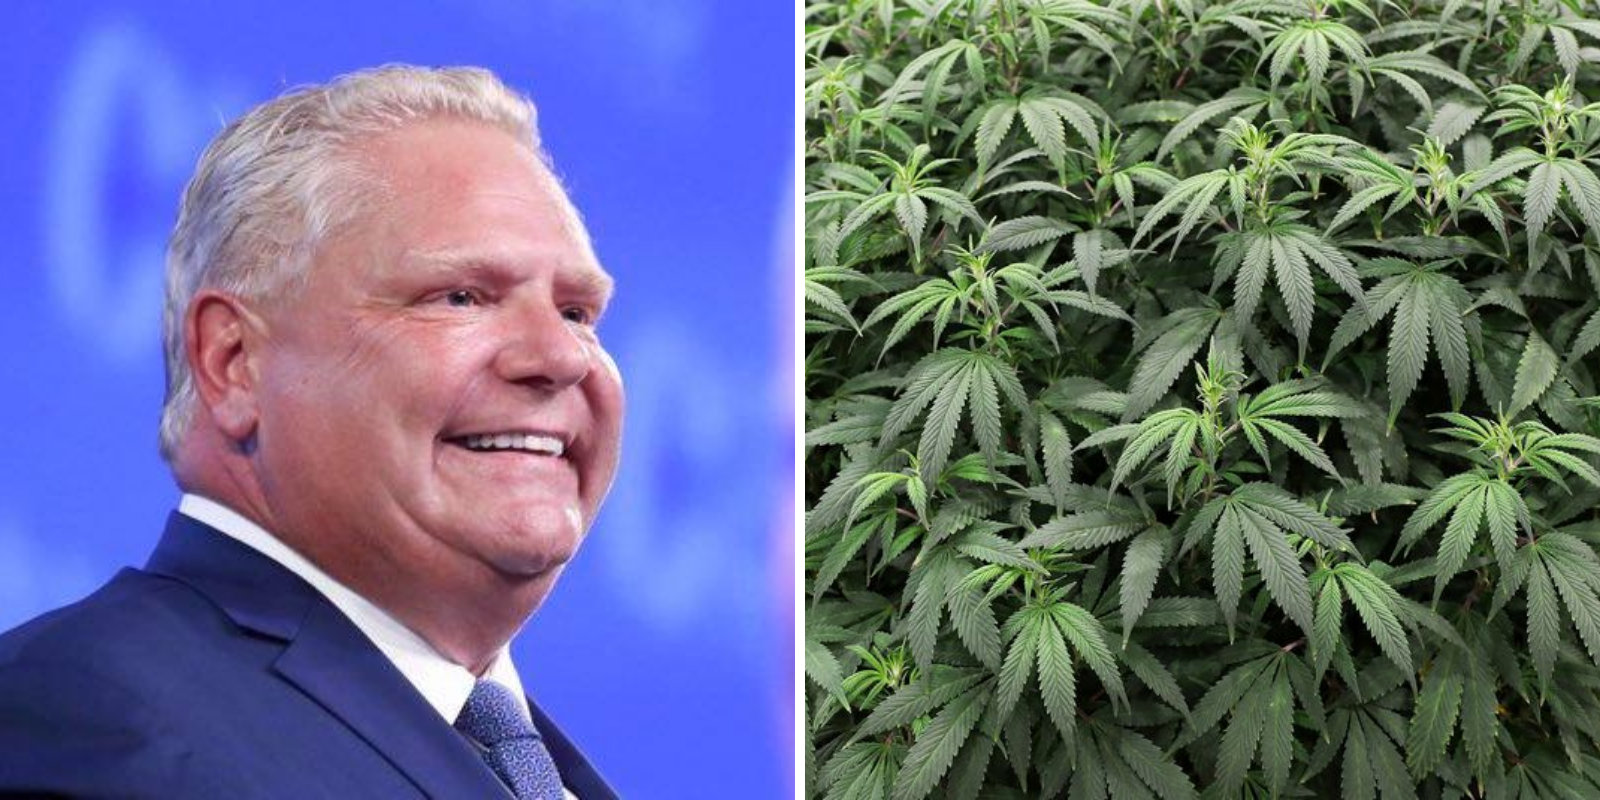 Ford government opens up cannabis market to retailers